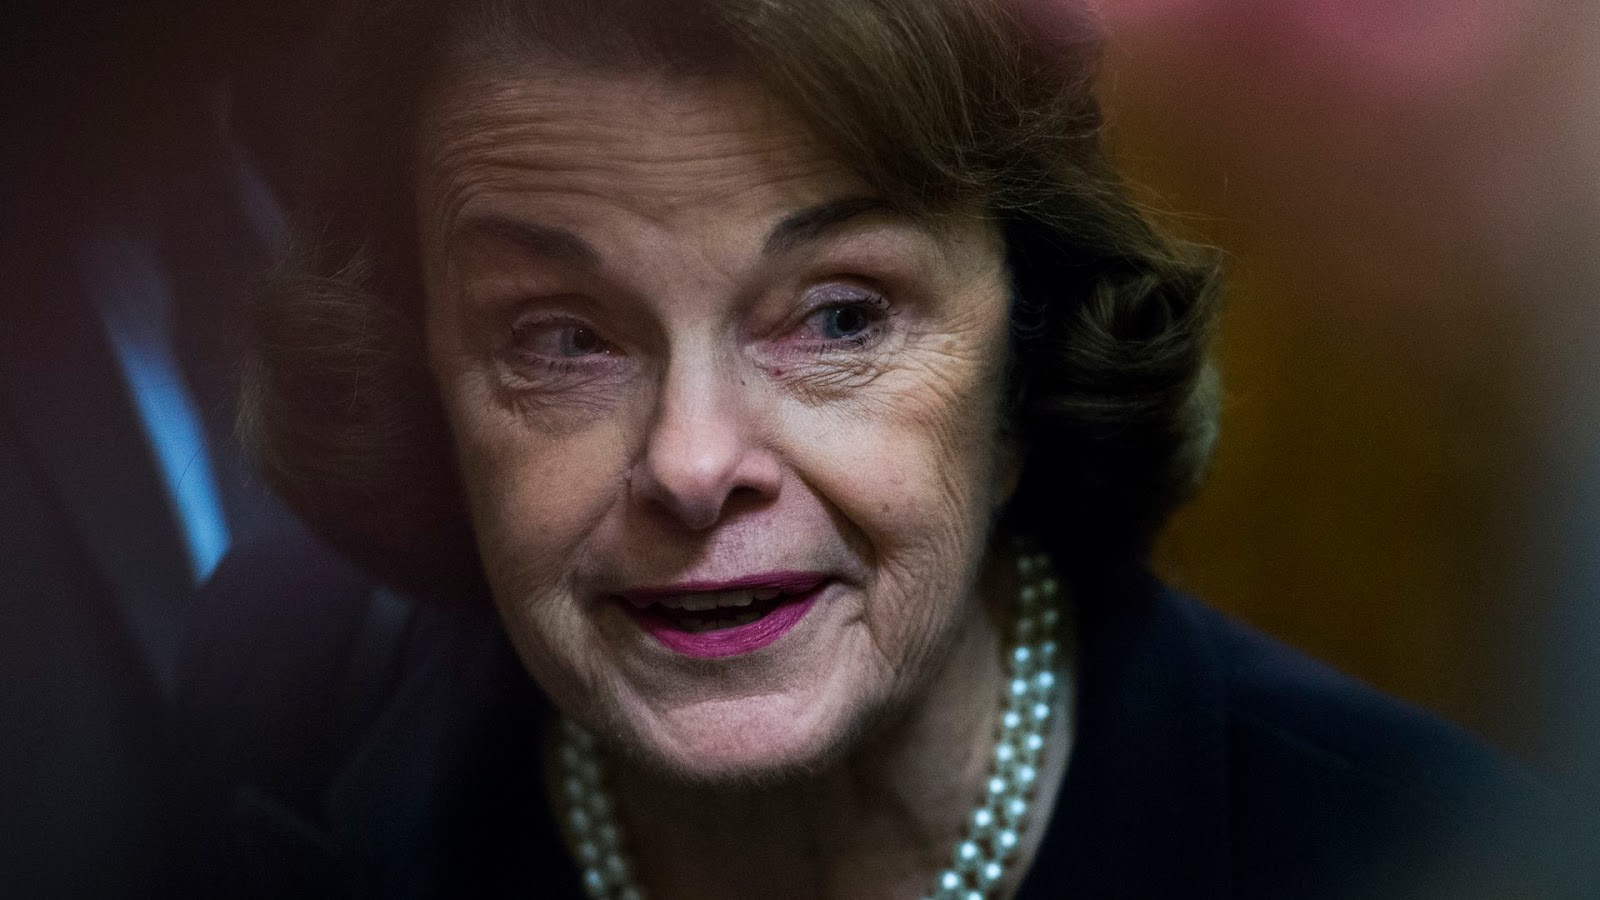 AFI. (Aug. 15, 2018). Sen. Dianne Feinstein, Soros, Queen's Privy Council stole software to push foreign interference in U.S. elections. Americans for Innovation.